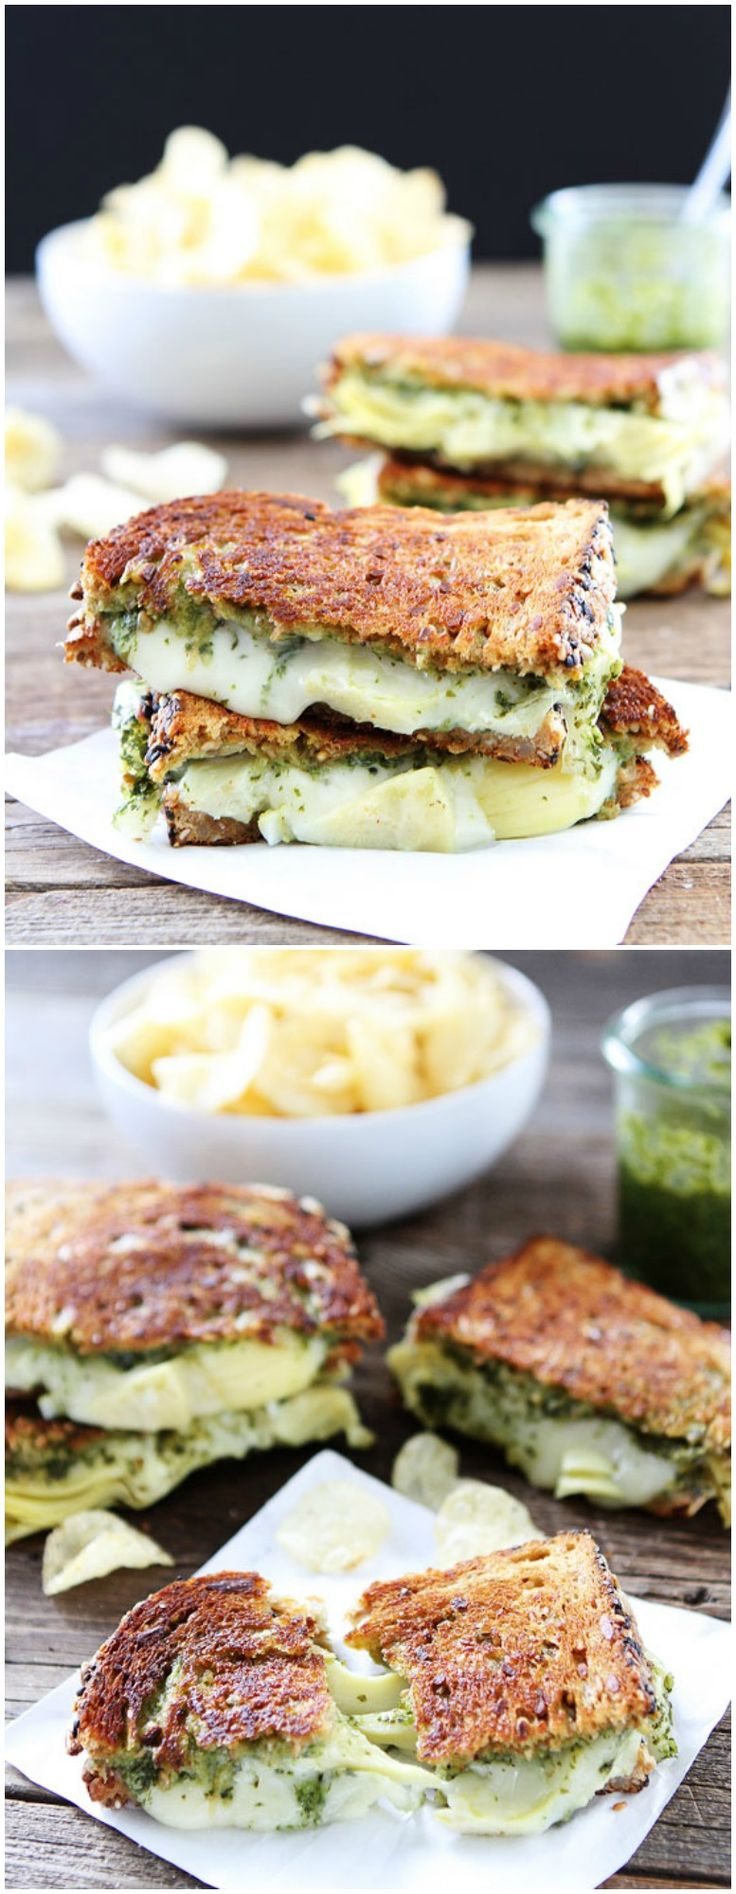 authentic jordan websites cheap Pesto Artichoke and Havarti Grilled Cheese Recipe on twopeasandtheirpod com This grilled cheese is bursting with flavor A MUST make